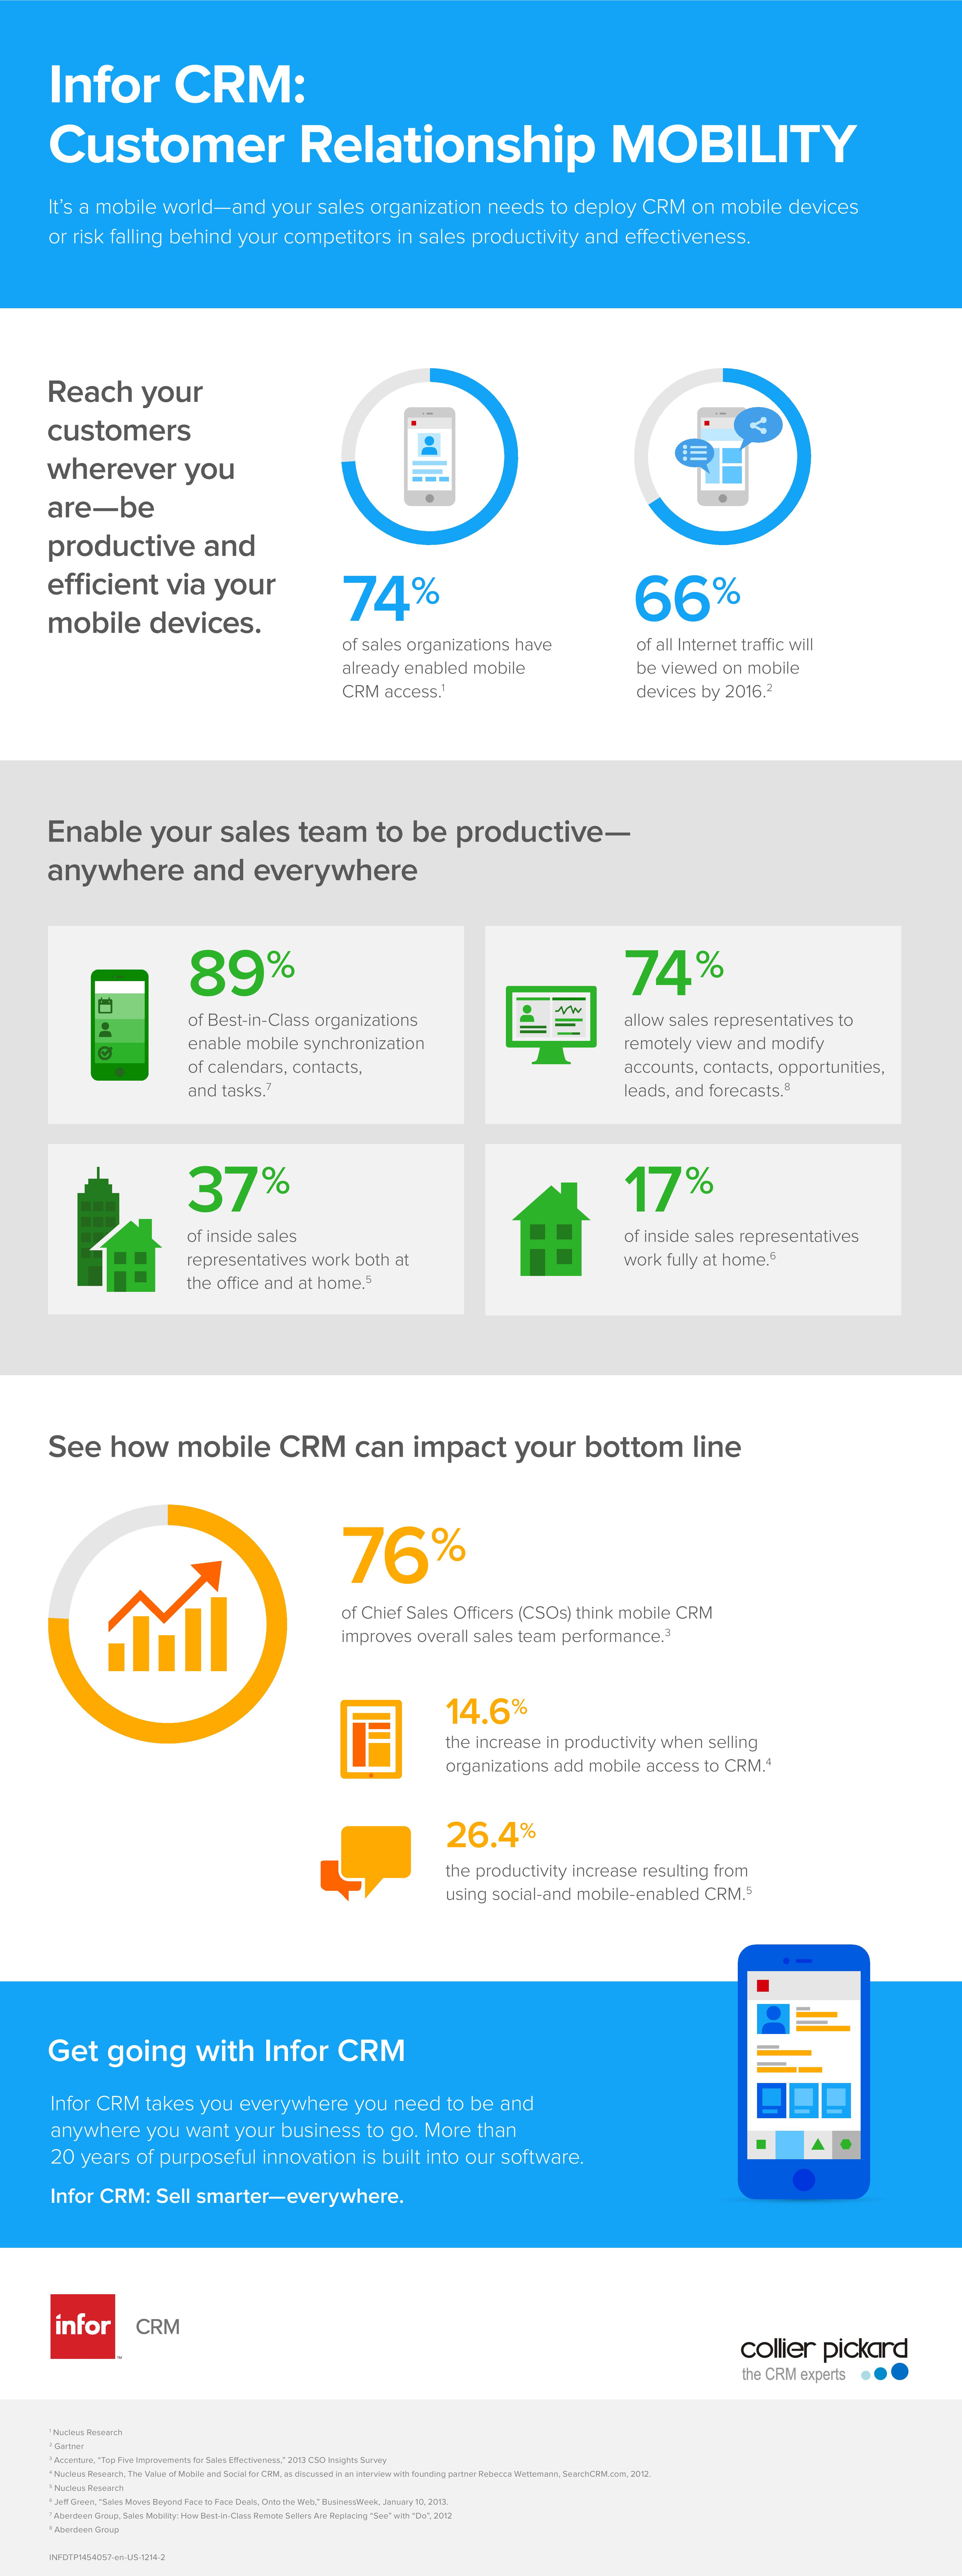 Infor CRM mobile infographic